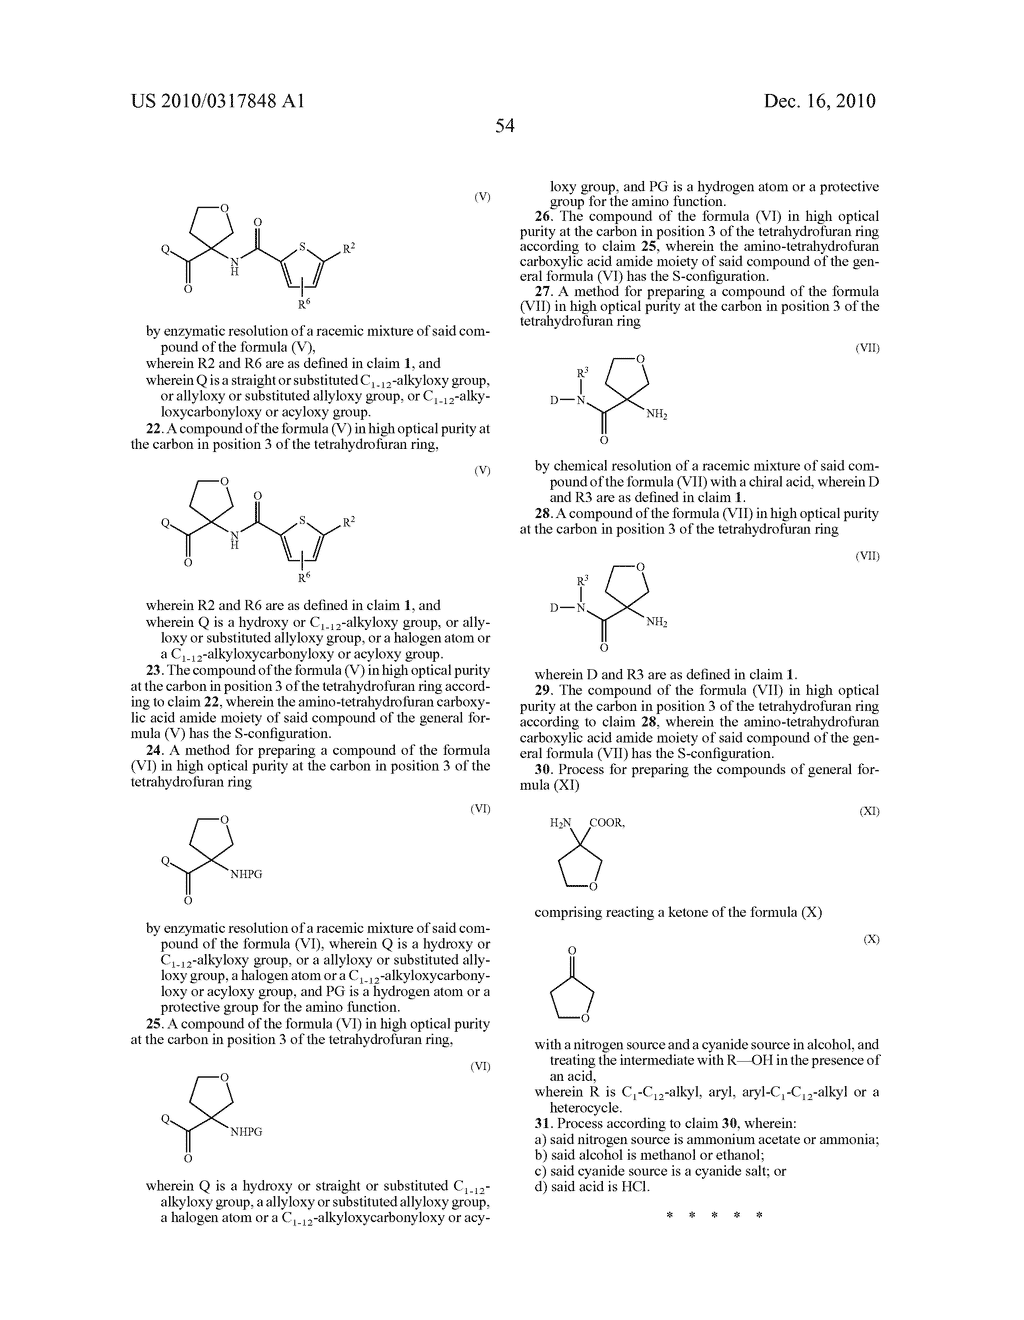 PROCESS FOR THE SYNTHESIS OF DERIVATIVES OF 3-AMINO-TETRAHYDROFURAN-3-CARBOXYLIC ACID AND USE THEREOF AS MEDICAMENTS - diagram, schematic, and image 59